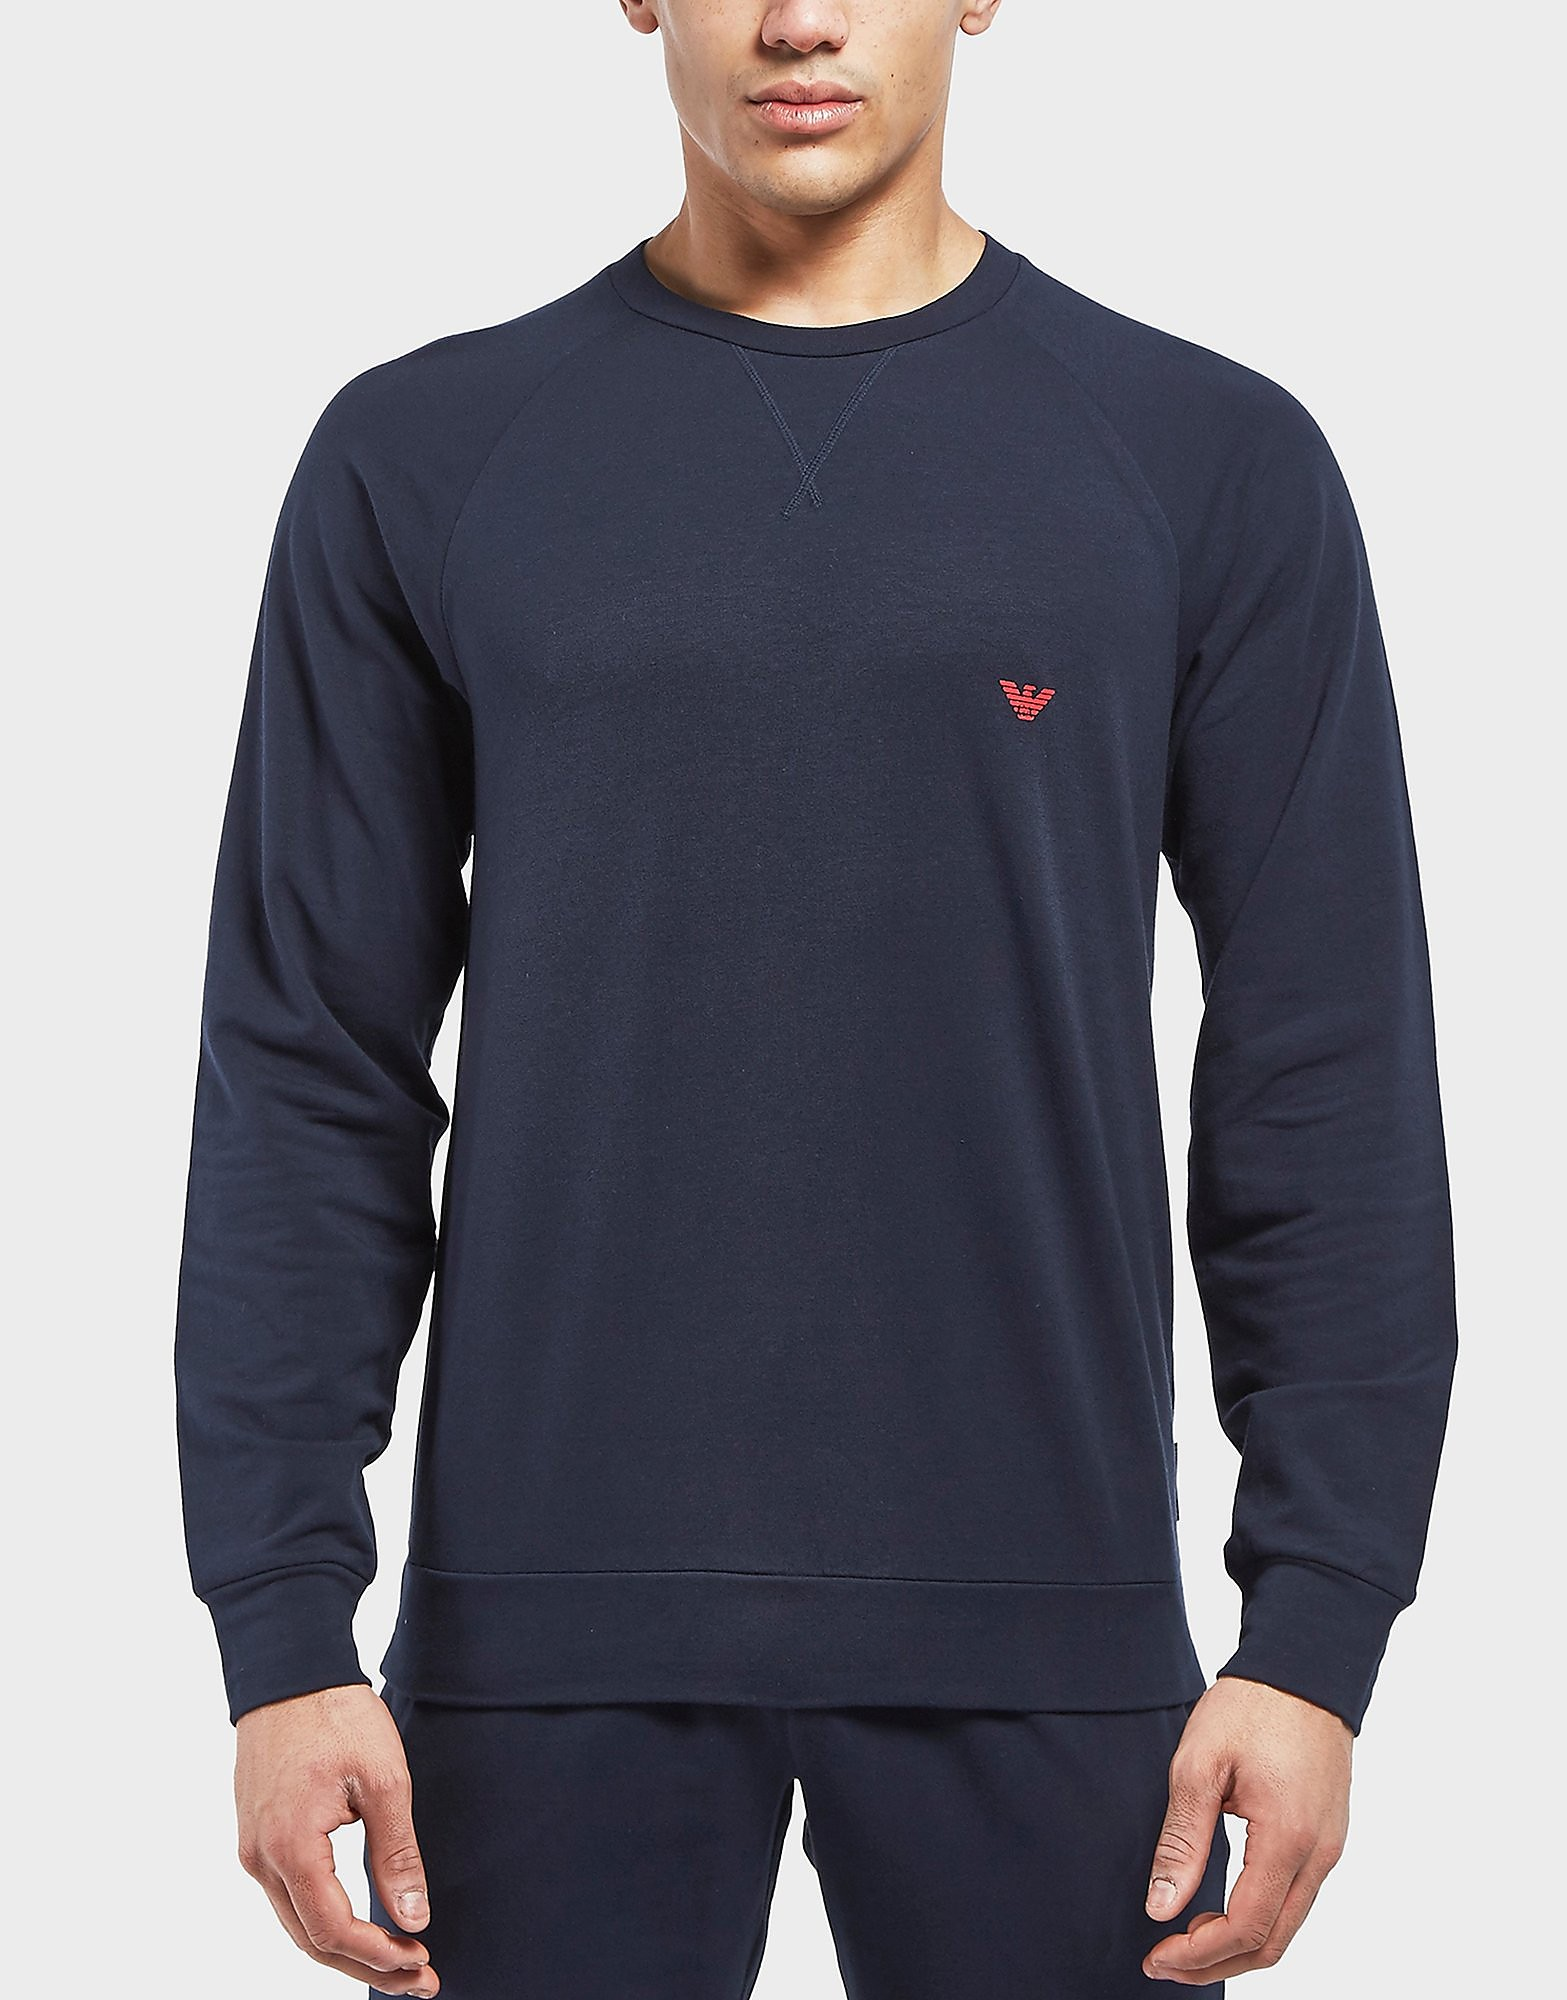 Emporio Armani Shiny Back Eagle Sweatshirt